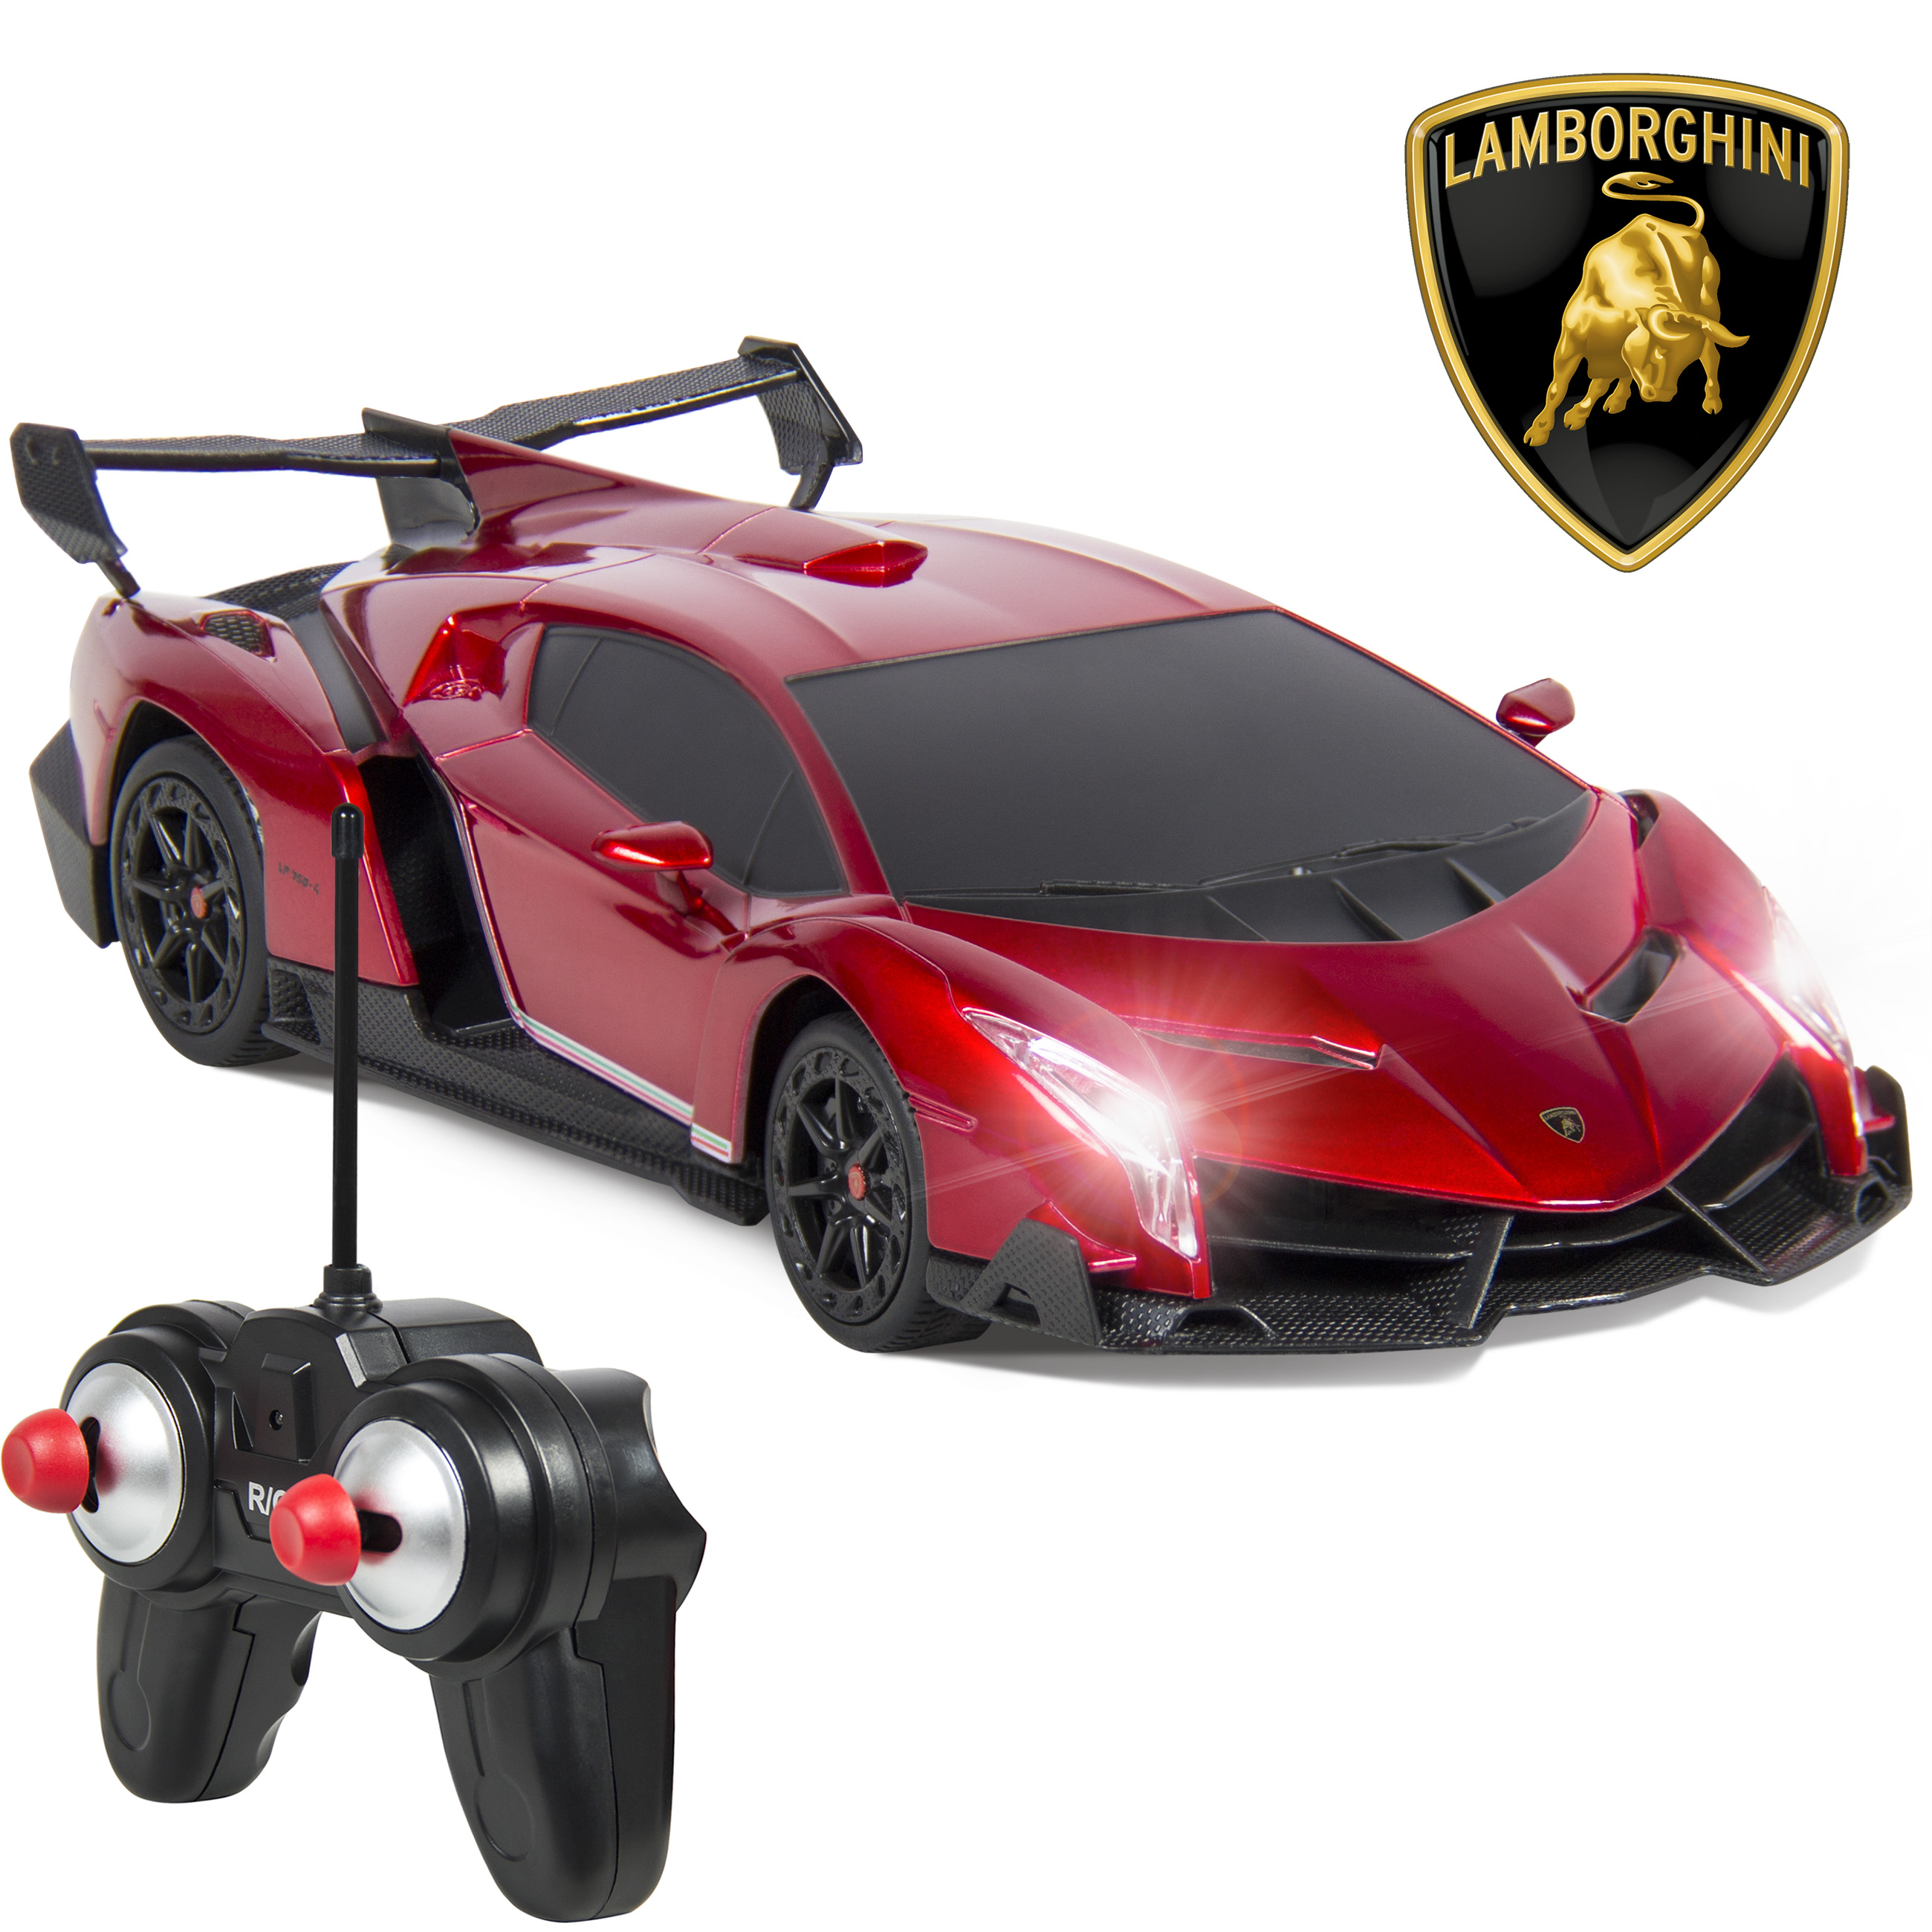 Merveilleux Best Choice Products 1/24 Officially Licensed RC Lamborghini Veneno Sport  Racing Car W/